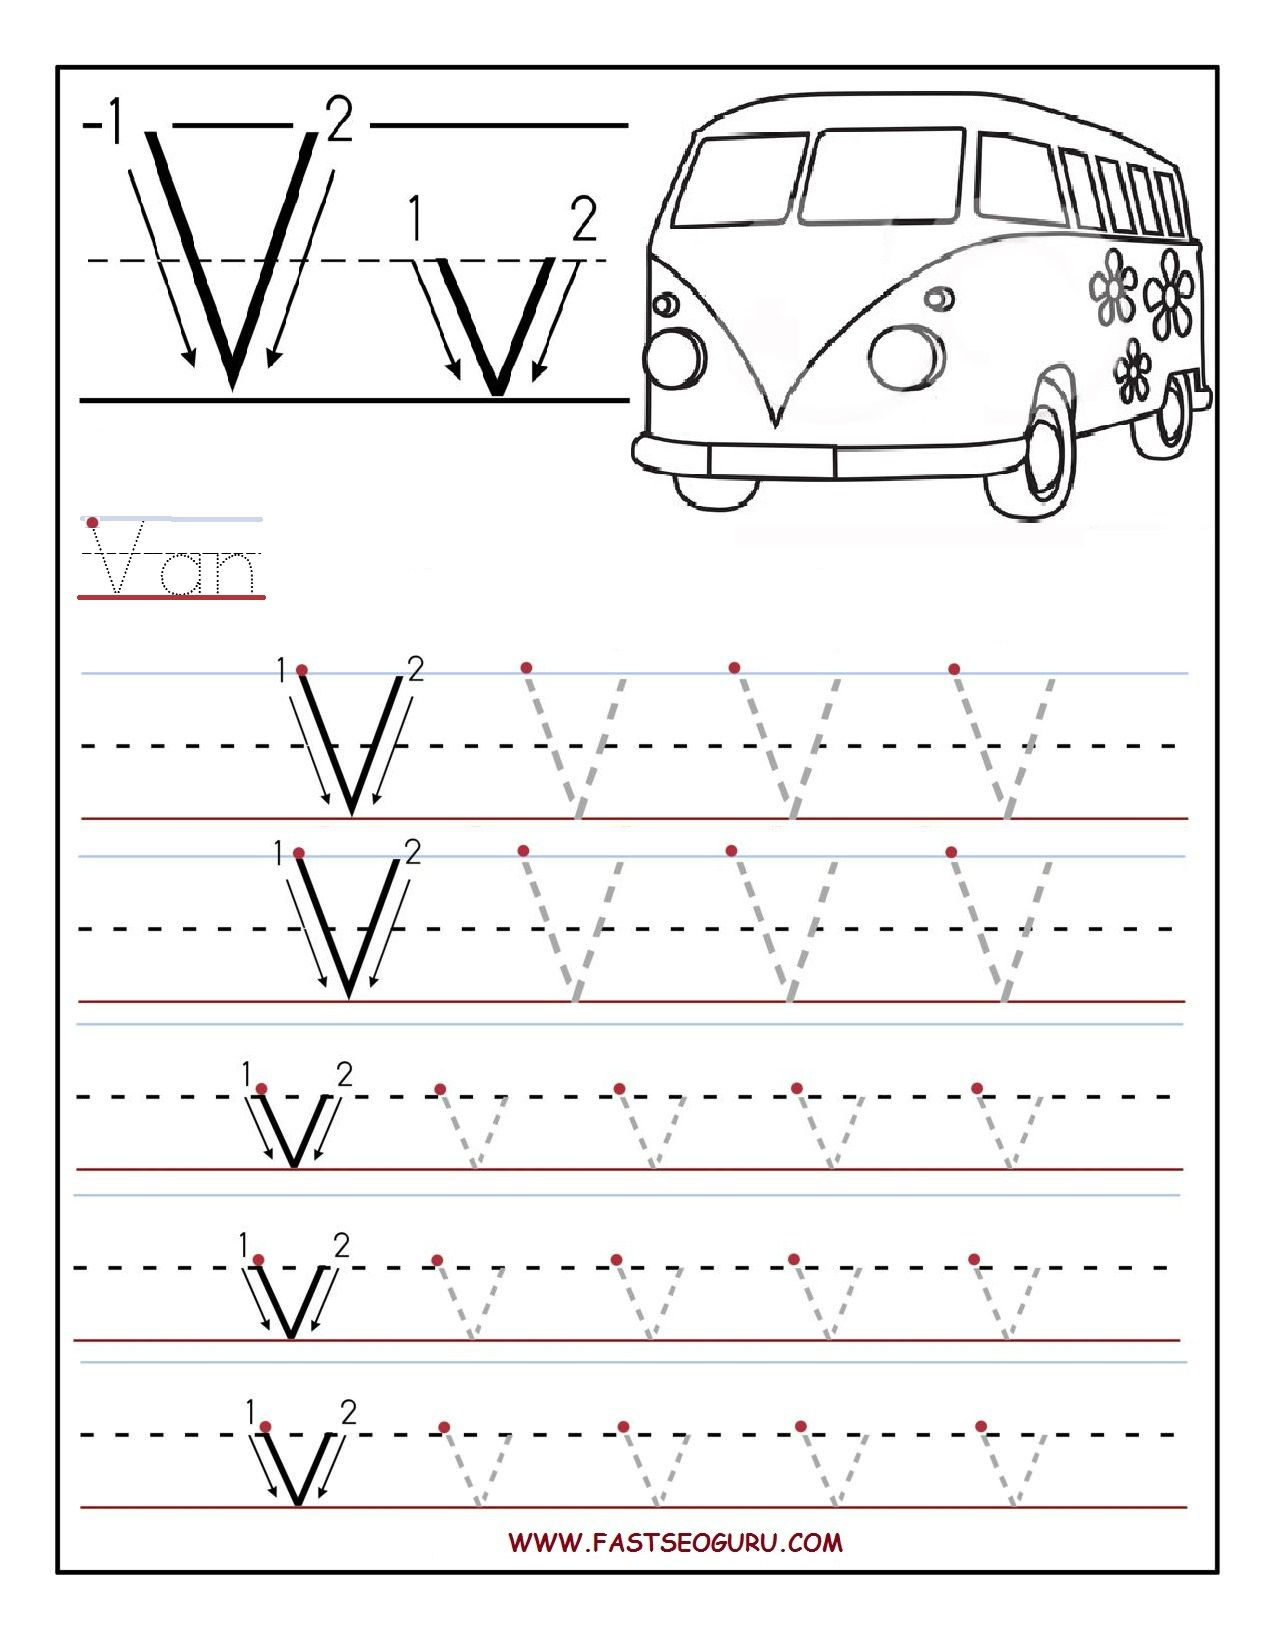 Printable Letter V Tracing Worksheets For Preschool within Letter V Tracing Pages